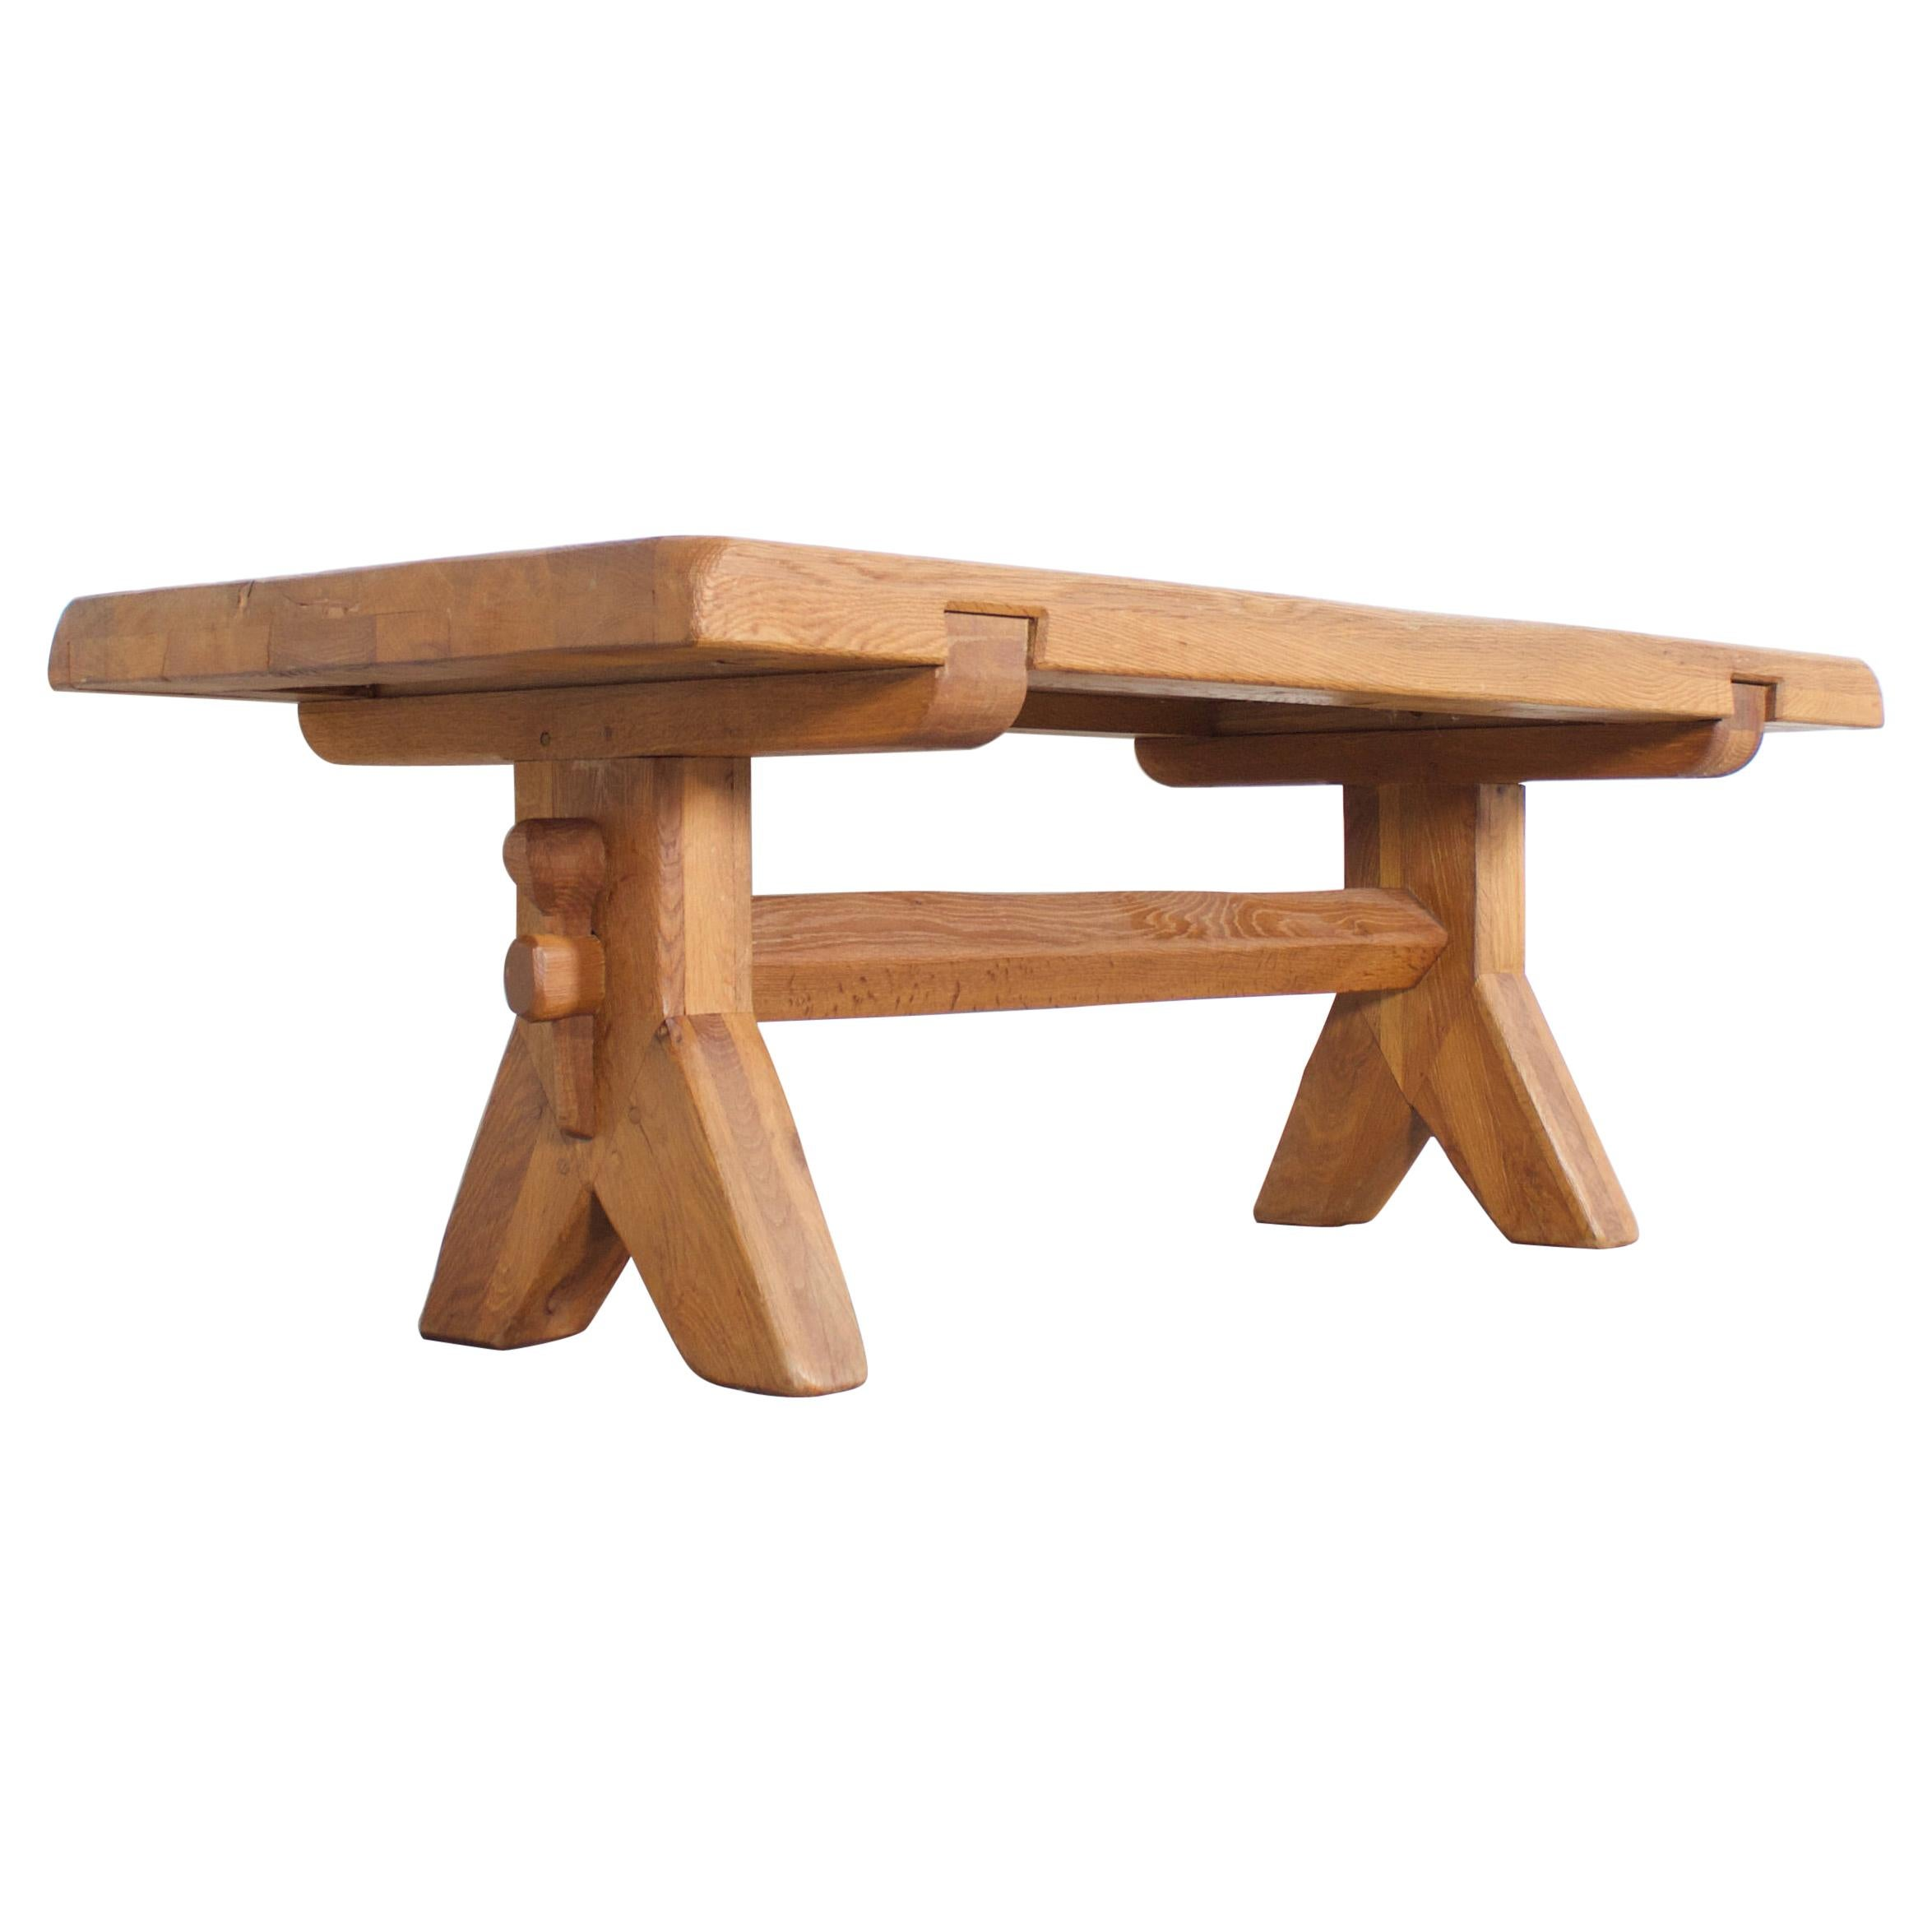 Brutalist French Artisan Console / Coffee Table in Solid Oak, 1960s